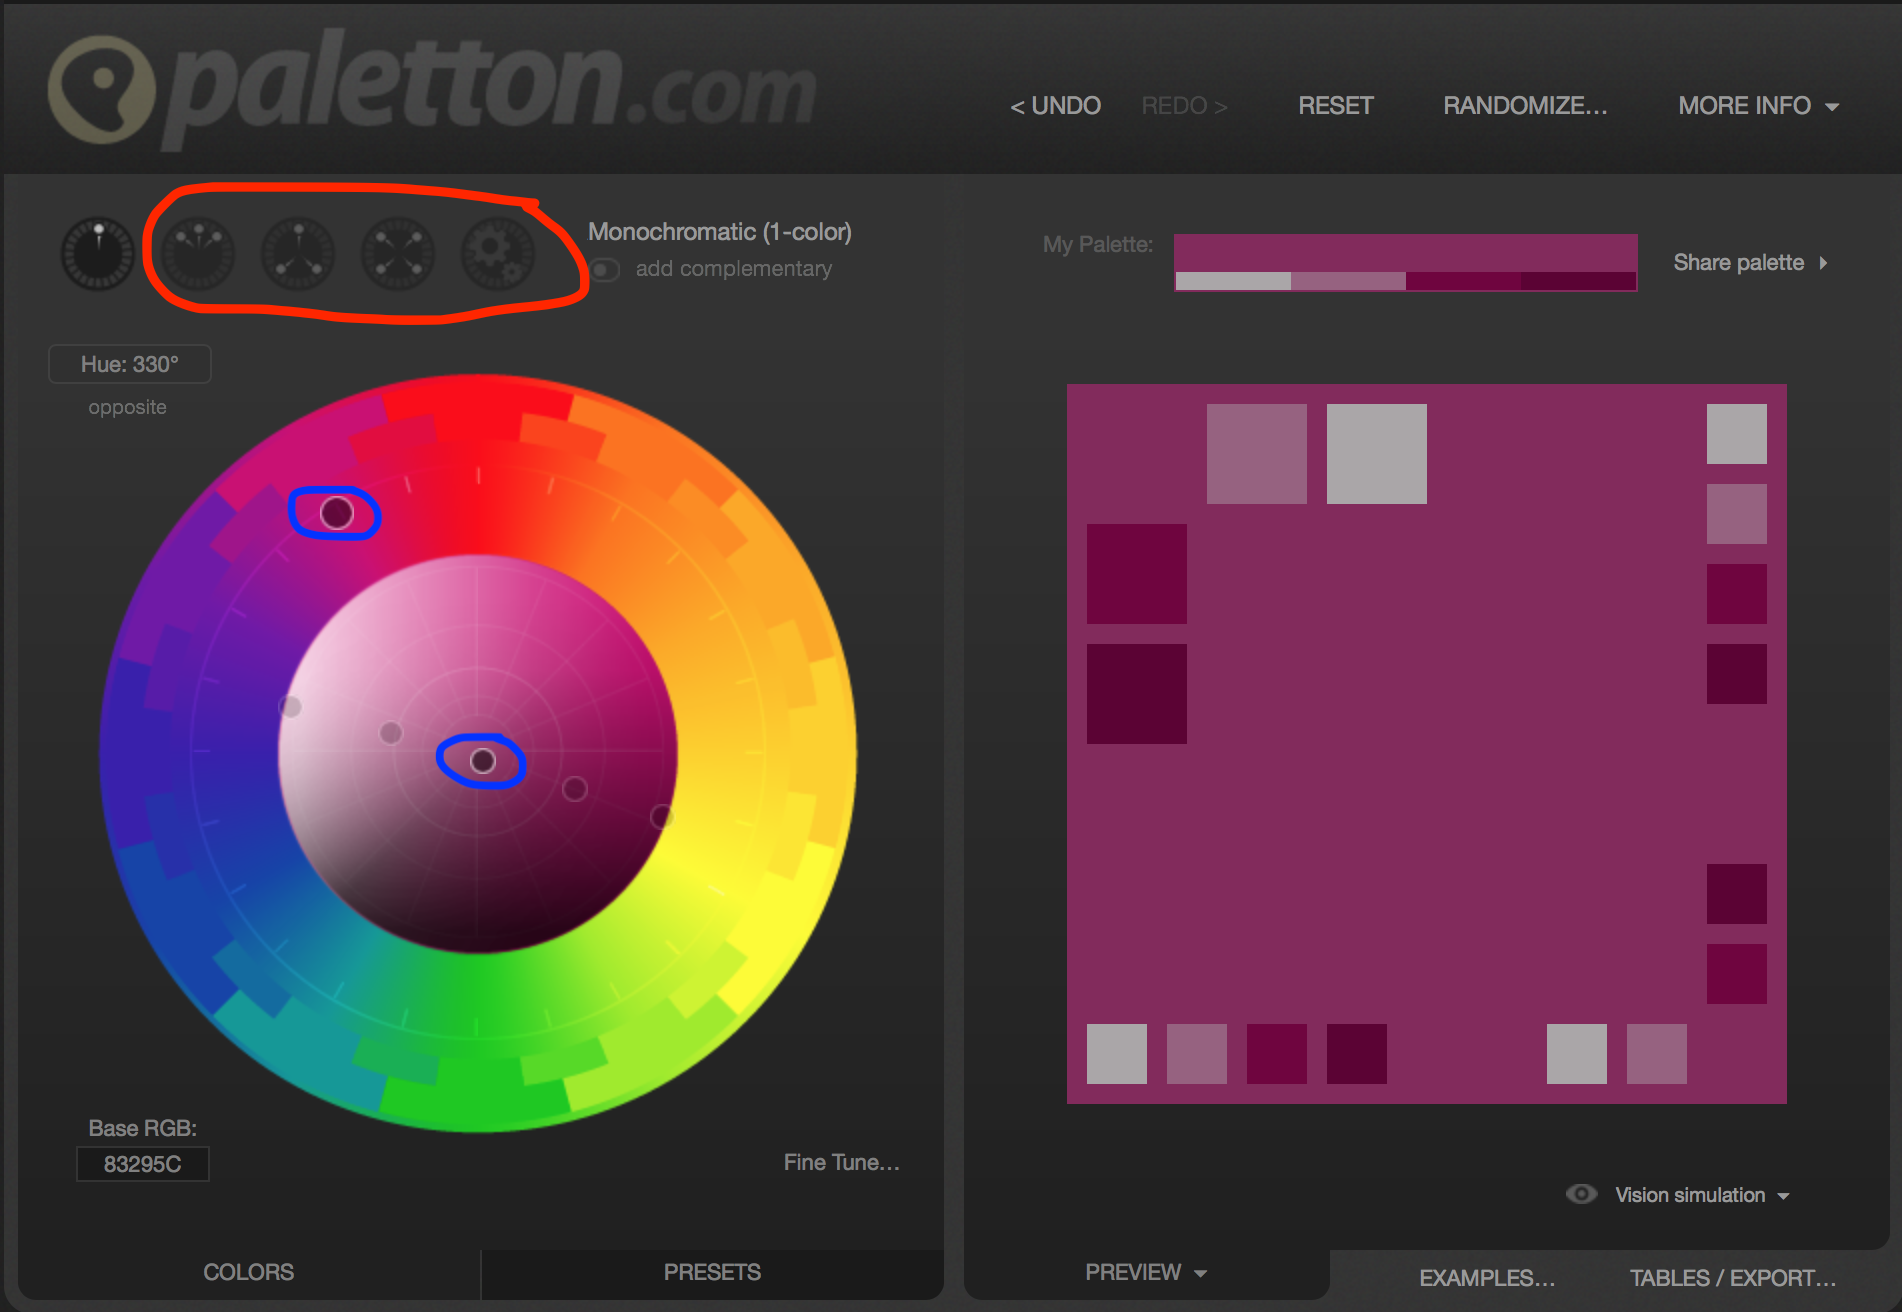 Picking a color scheme using Paletton color scheme designer.